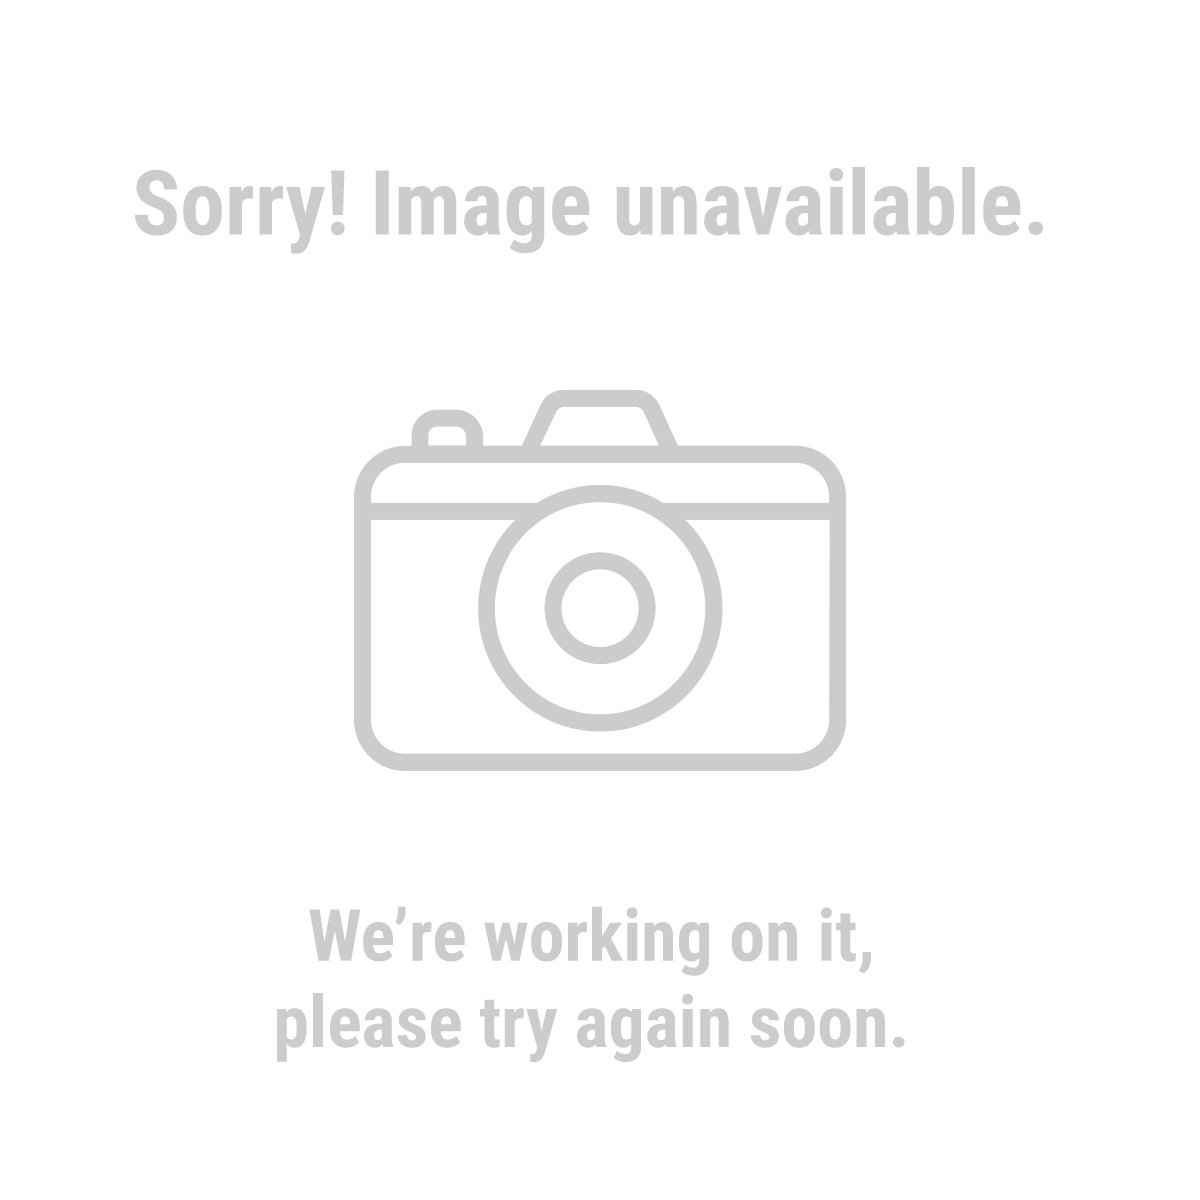 Cen-Tech 67979 Digital Inspection Camera